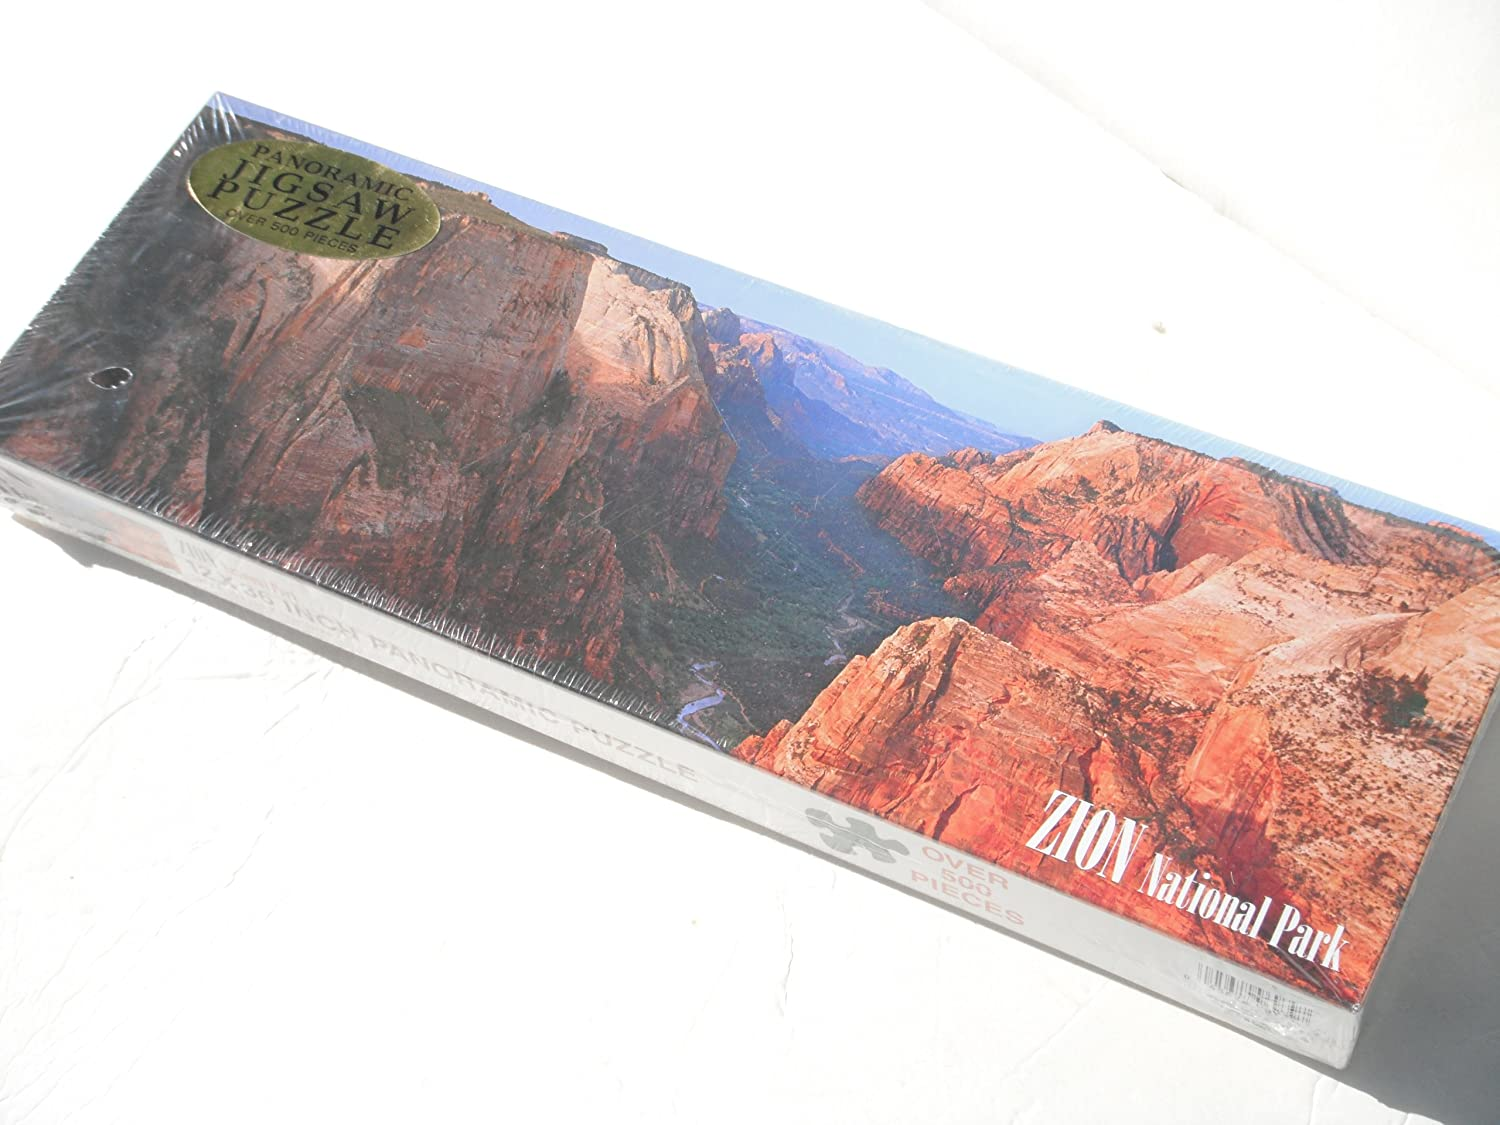 ZION NATIONAL PARK 12 X 36 INCH PANORAMIC PUZZLE (Over 500 Pieces) by Zion National Park